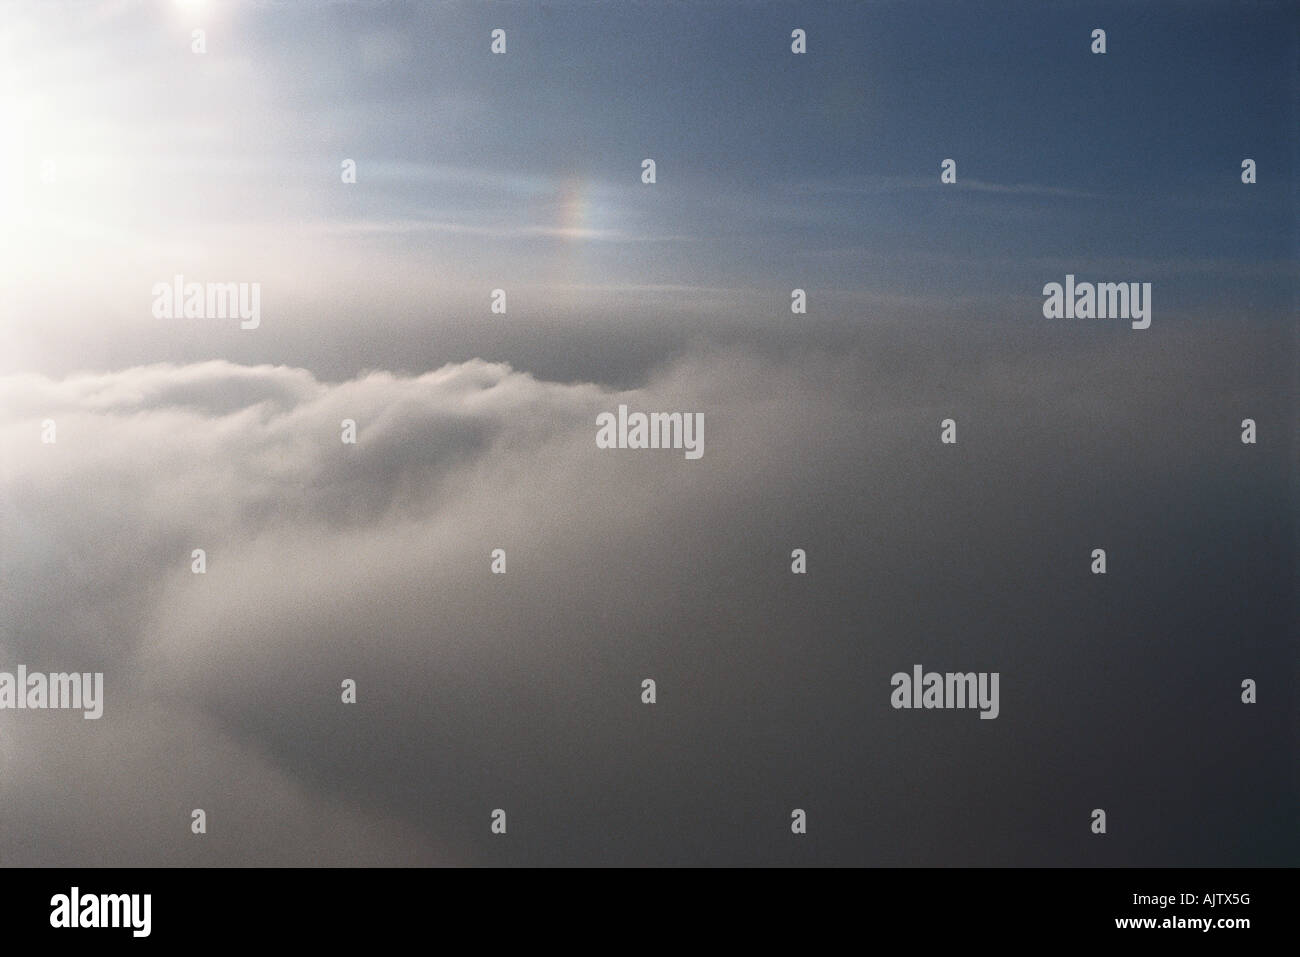 Clouds, aerial view - Stock Image